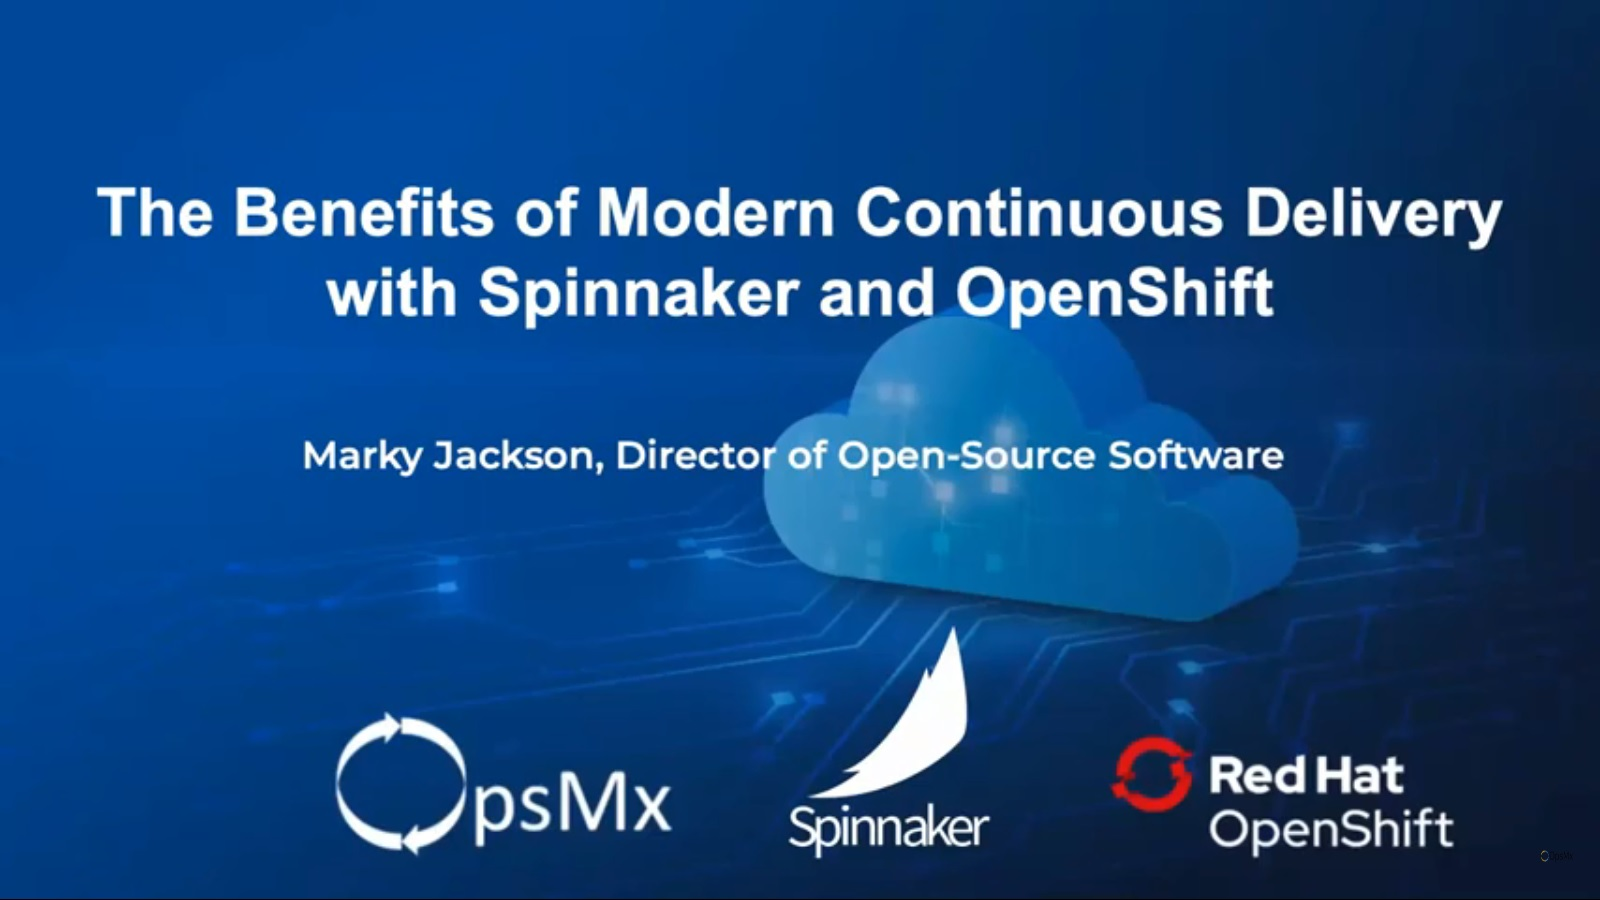 Benefits of modern Continuous Delivery with Spinnaker and OpenShift